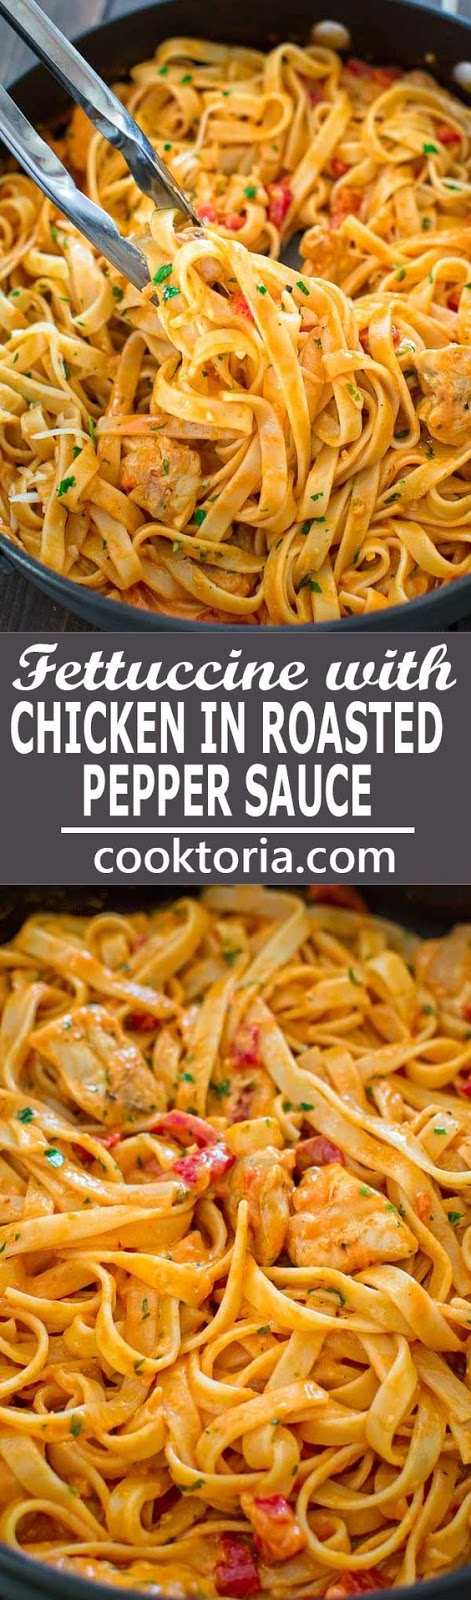 FETTUCCINE WITH ROASTED PEPPER SAUCE